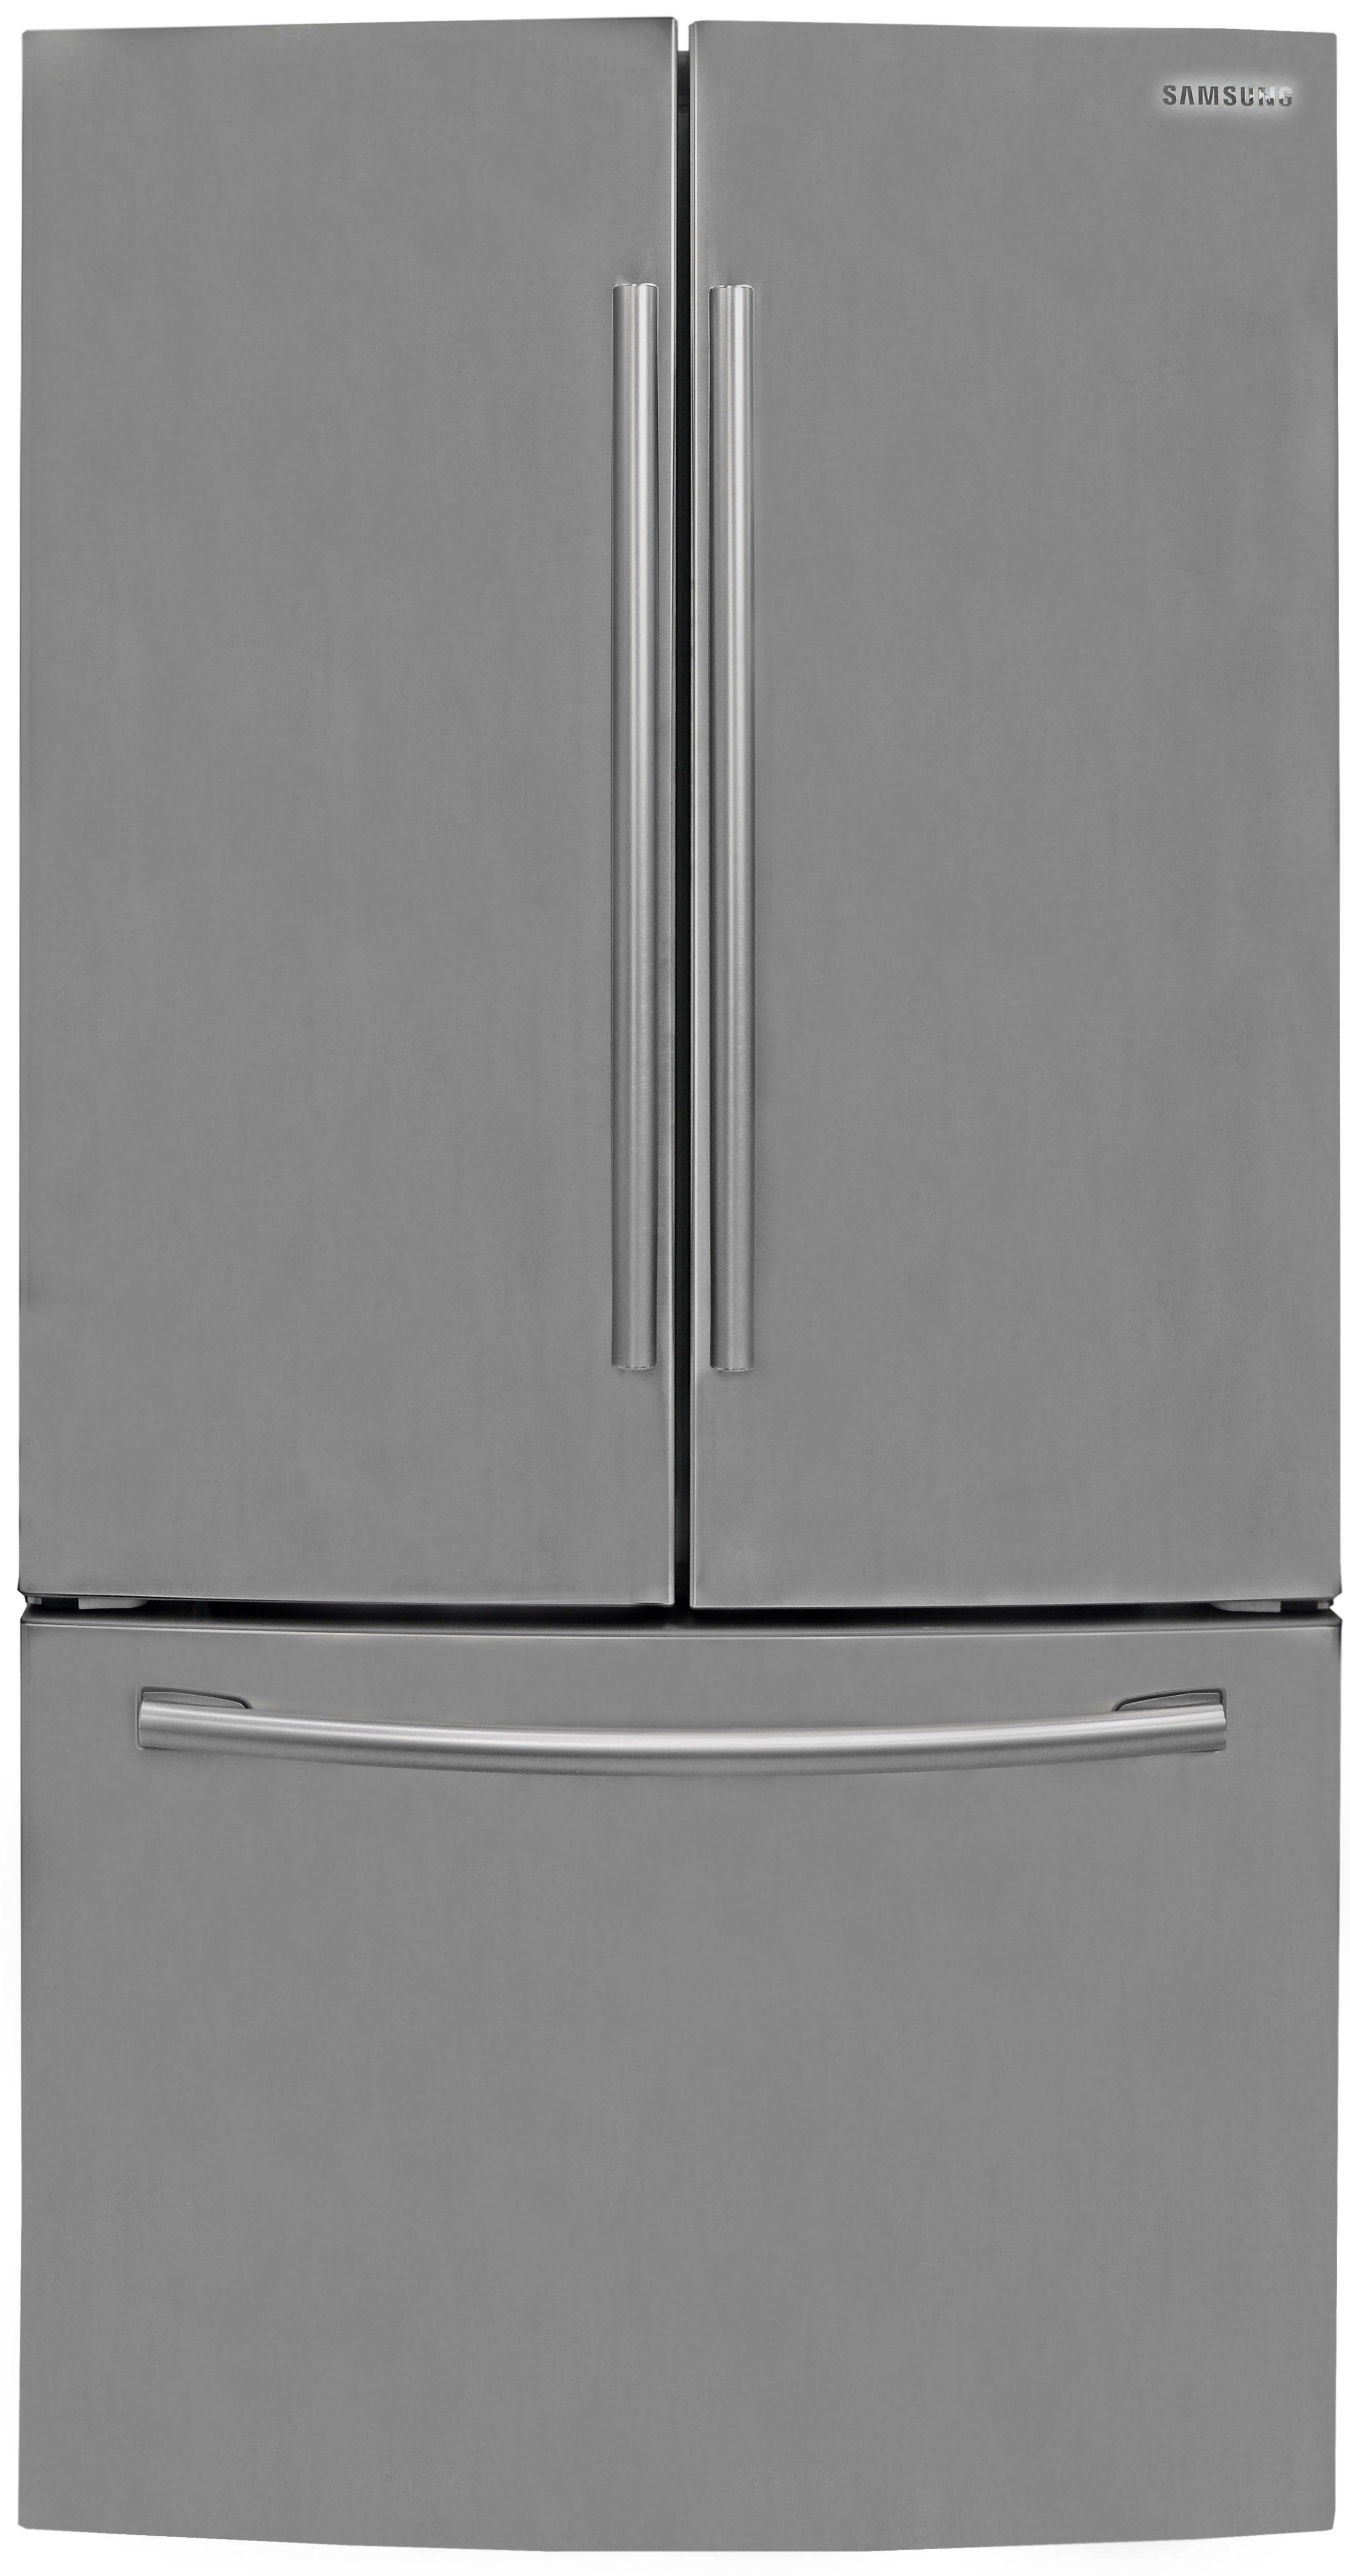 The stainless steel Samsung RF260BEAESR may look pretty run-of-the-mill, but it's truly a superior appliance.